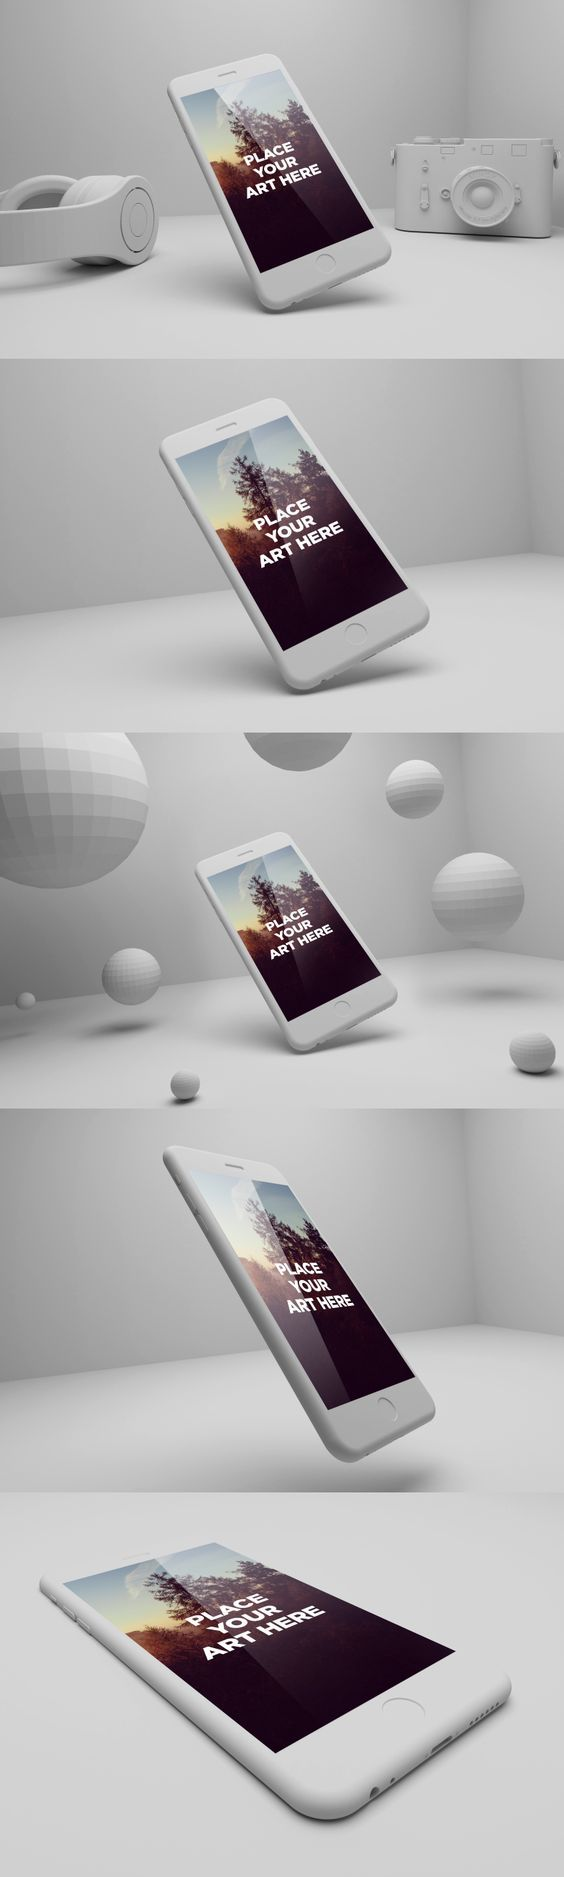 New FREE iPhone 6 PSD Playful Mockup Download free here: http://freegoodiesfordesigners.blogspot.se/2014/11/free-iphone-6-plus-playful-psd-mockups.html: